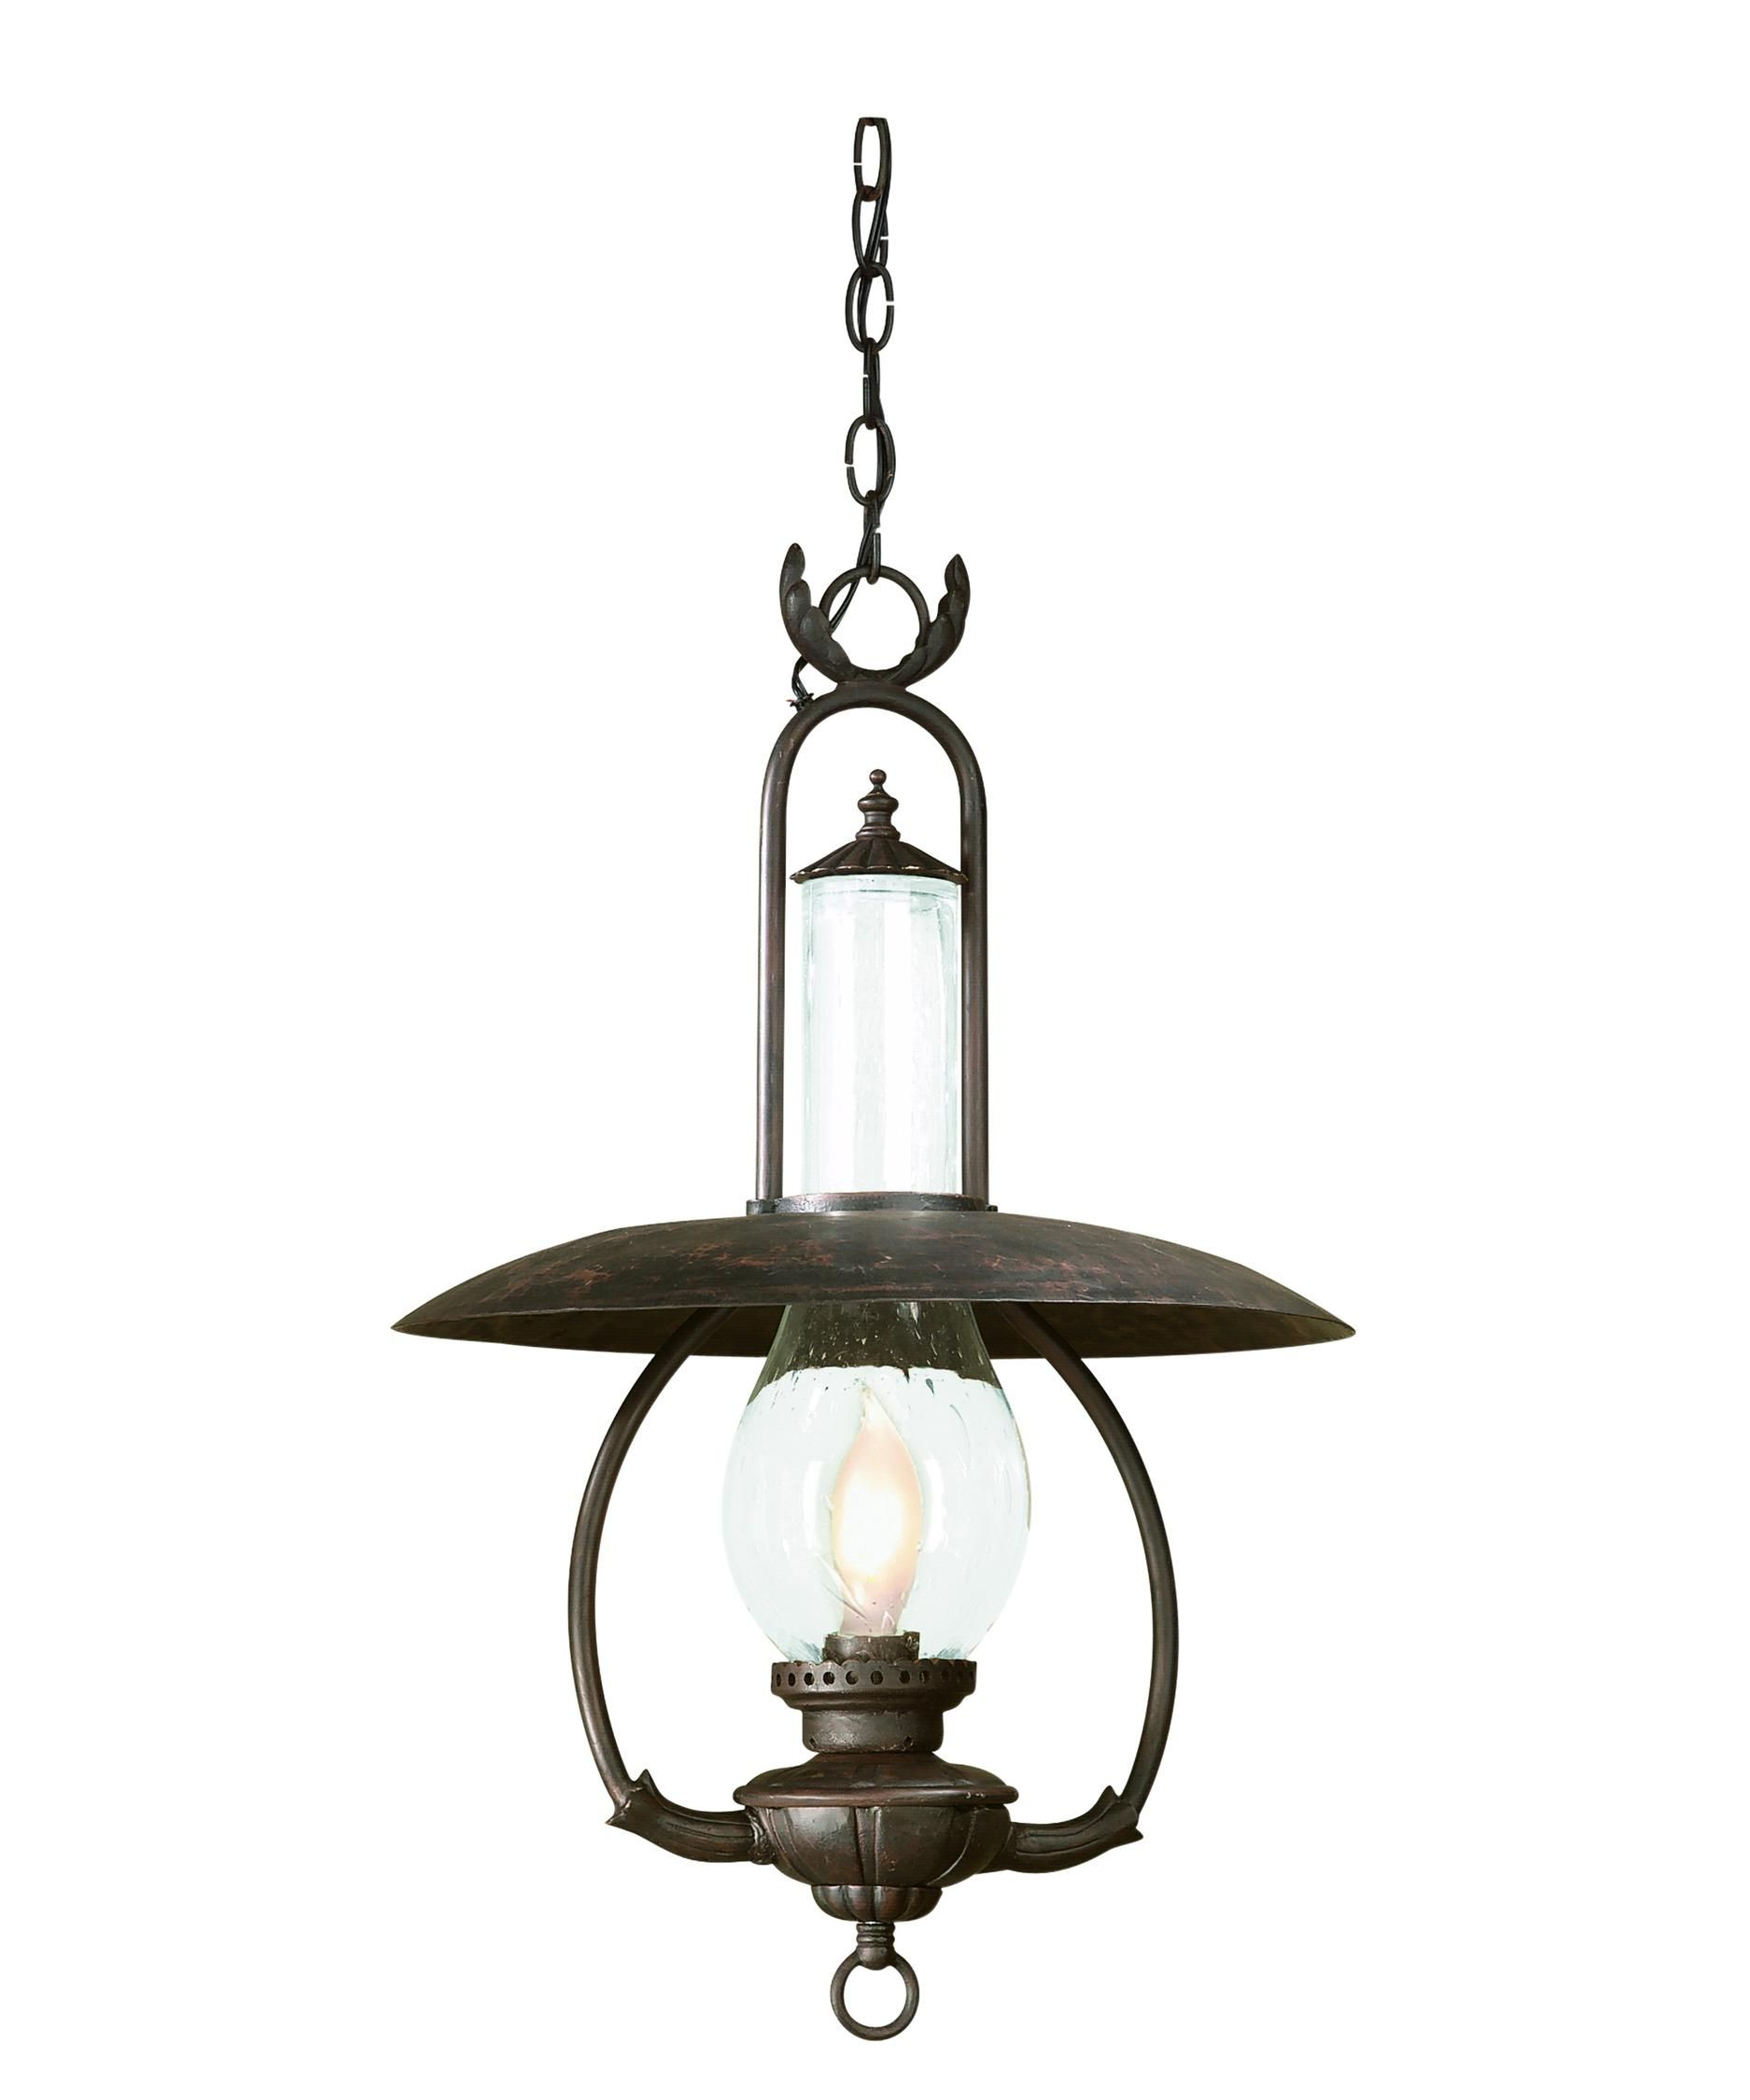 Troy Lighting Fcd9013 La Grange 1 Light Outdoor Hanging Lantern Capitol 800lighting